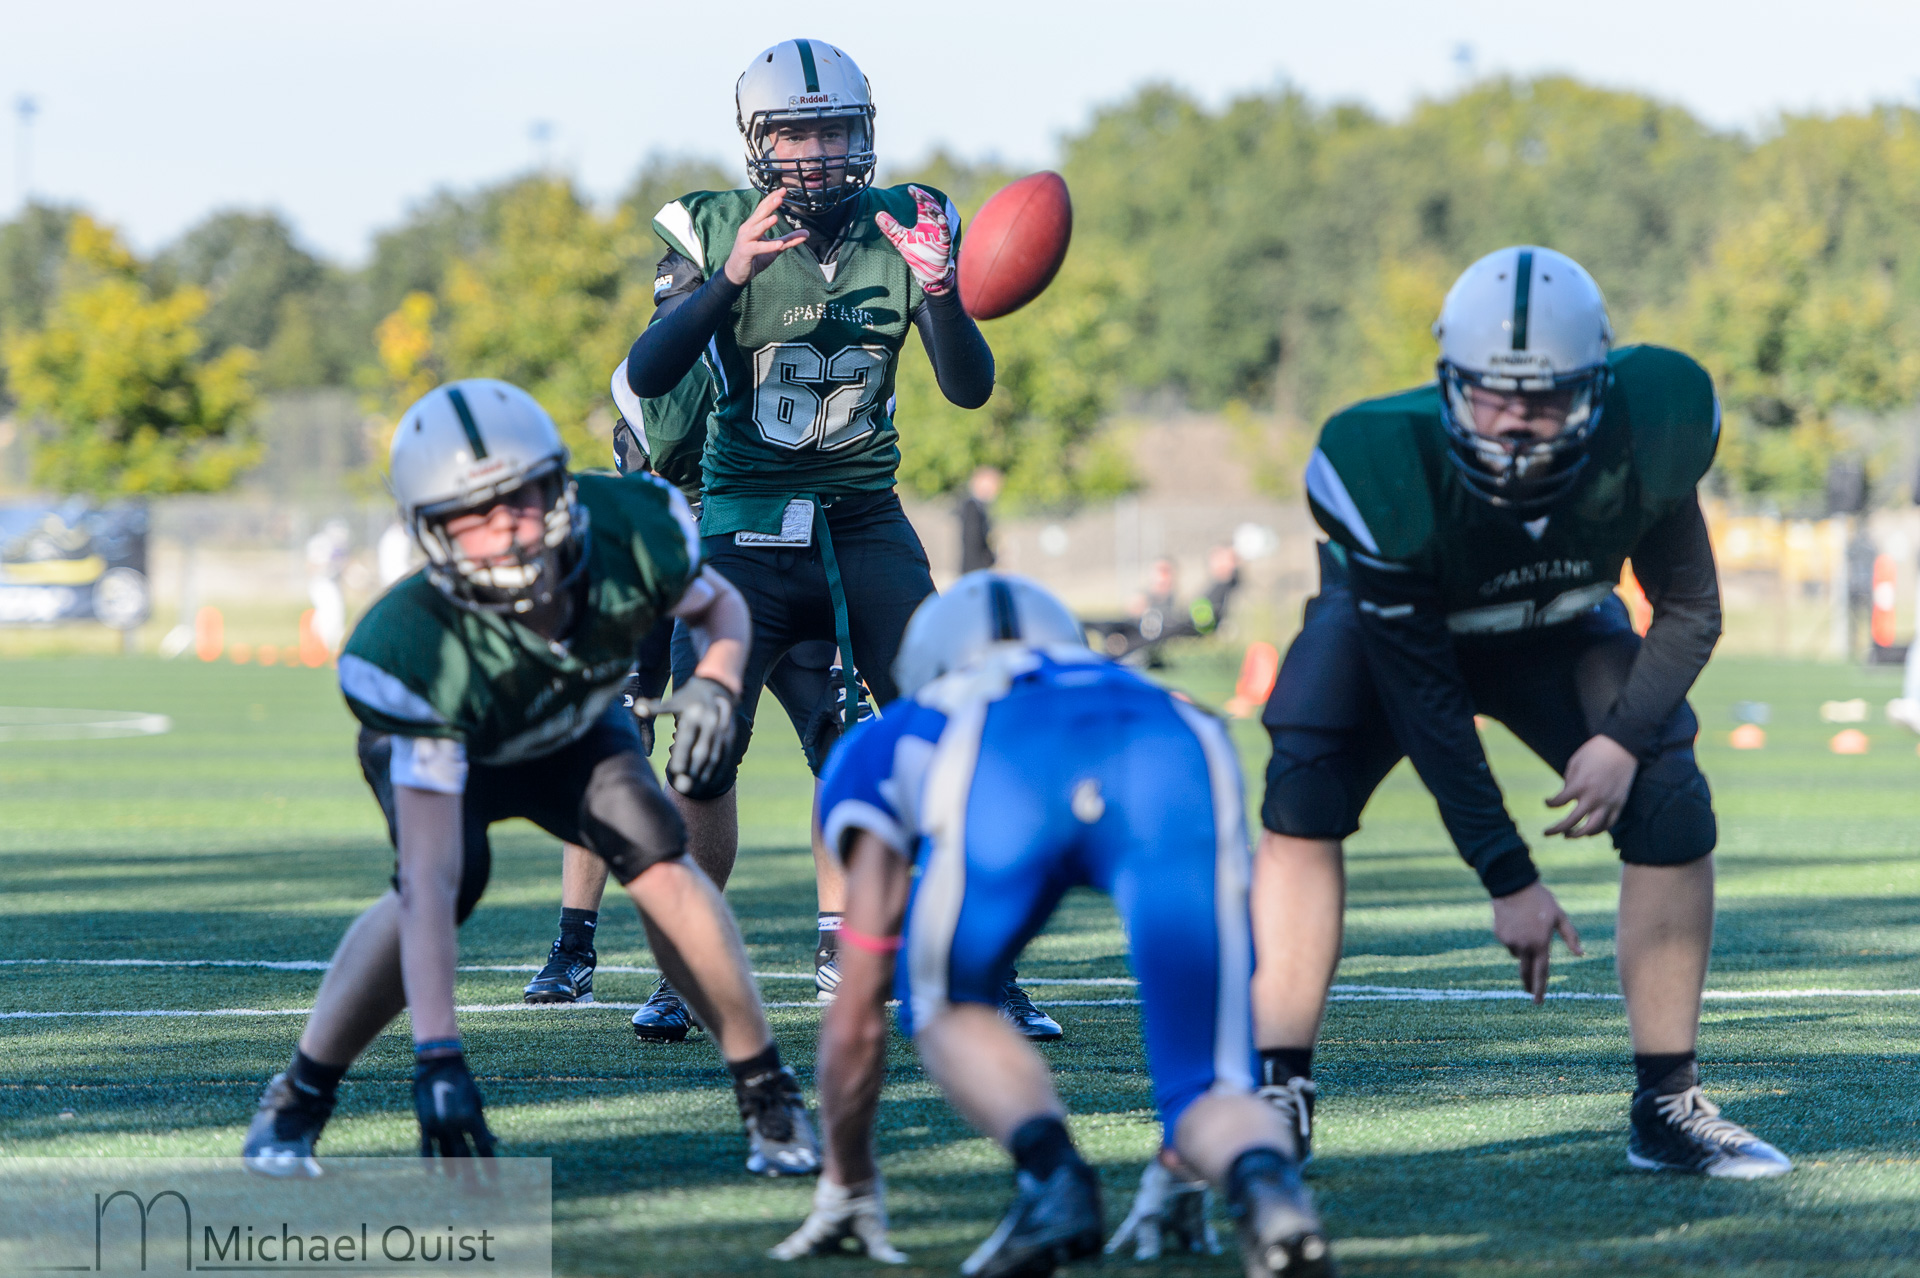 U16-RS-Bowl-2015-Ørestaden-Spartans-vs-Slagelse-Wolfpack-12